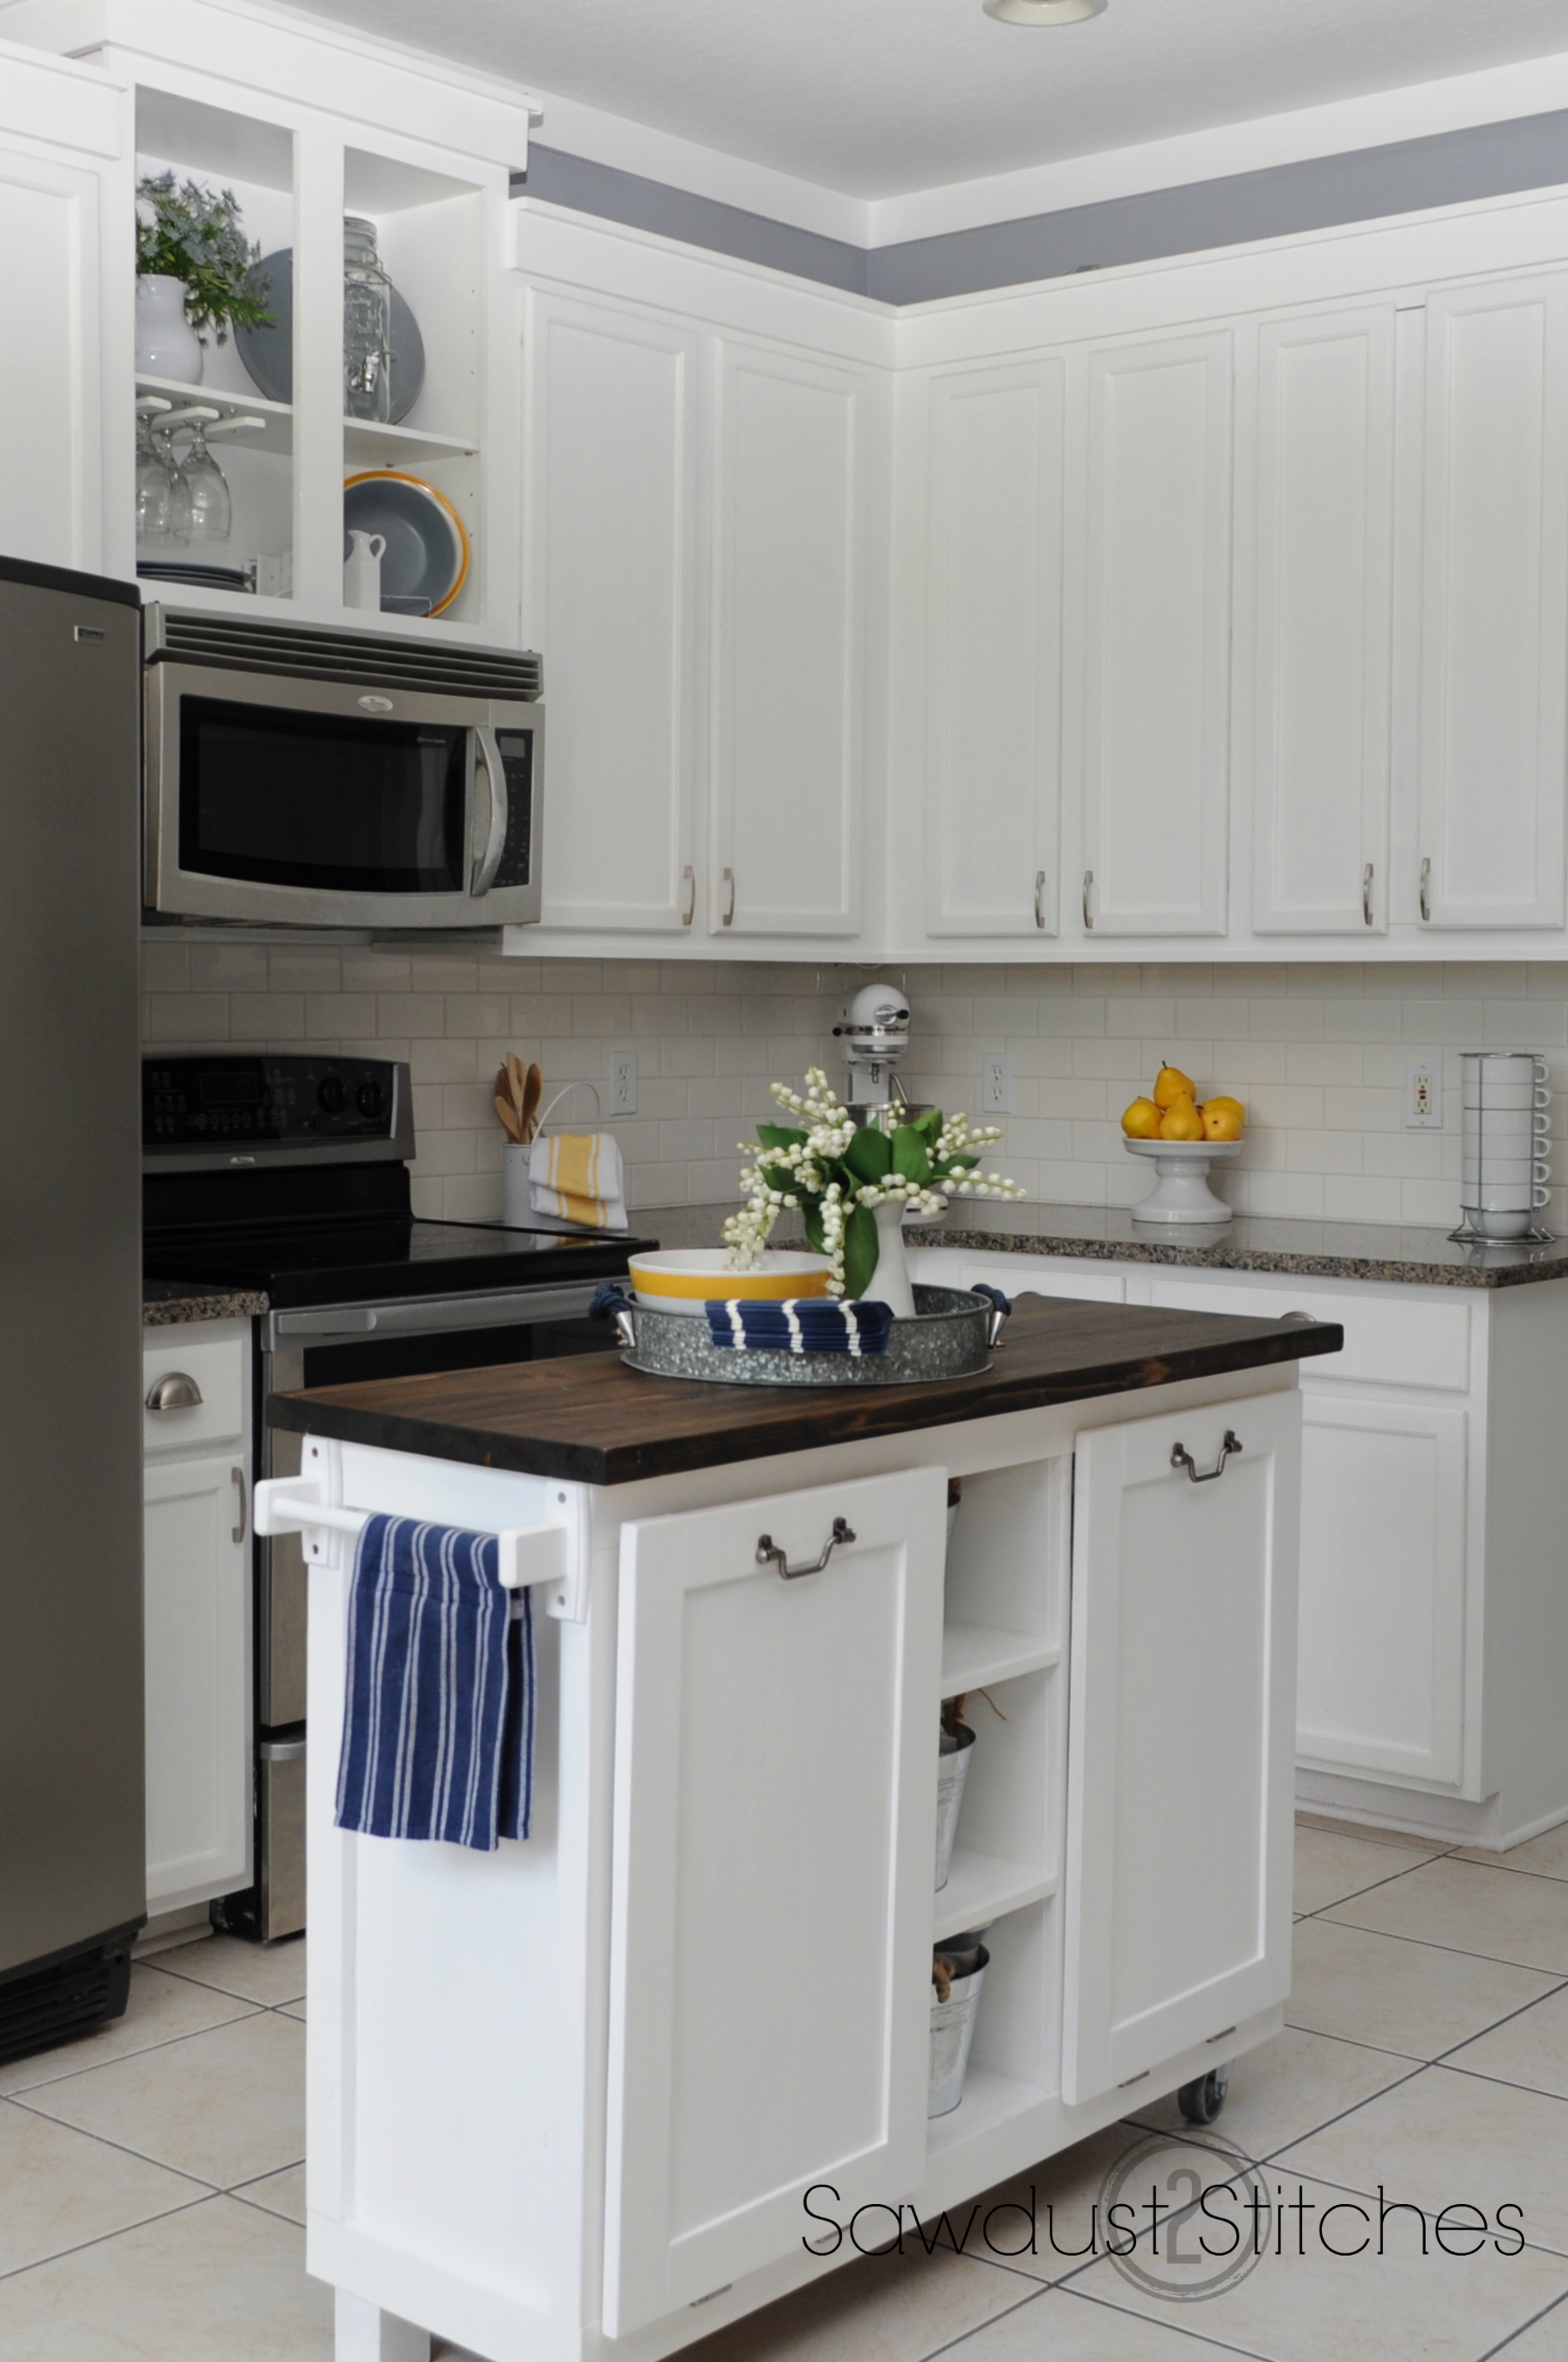 Uncategorized Mdf Kitchen Cabinets Reviews remodelaholic diy refinished and painted cabinet reviews corey sawdust2stitches white kitchen cabinets review after a year